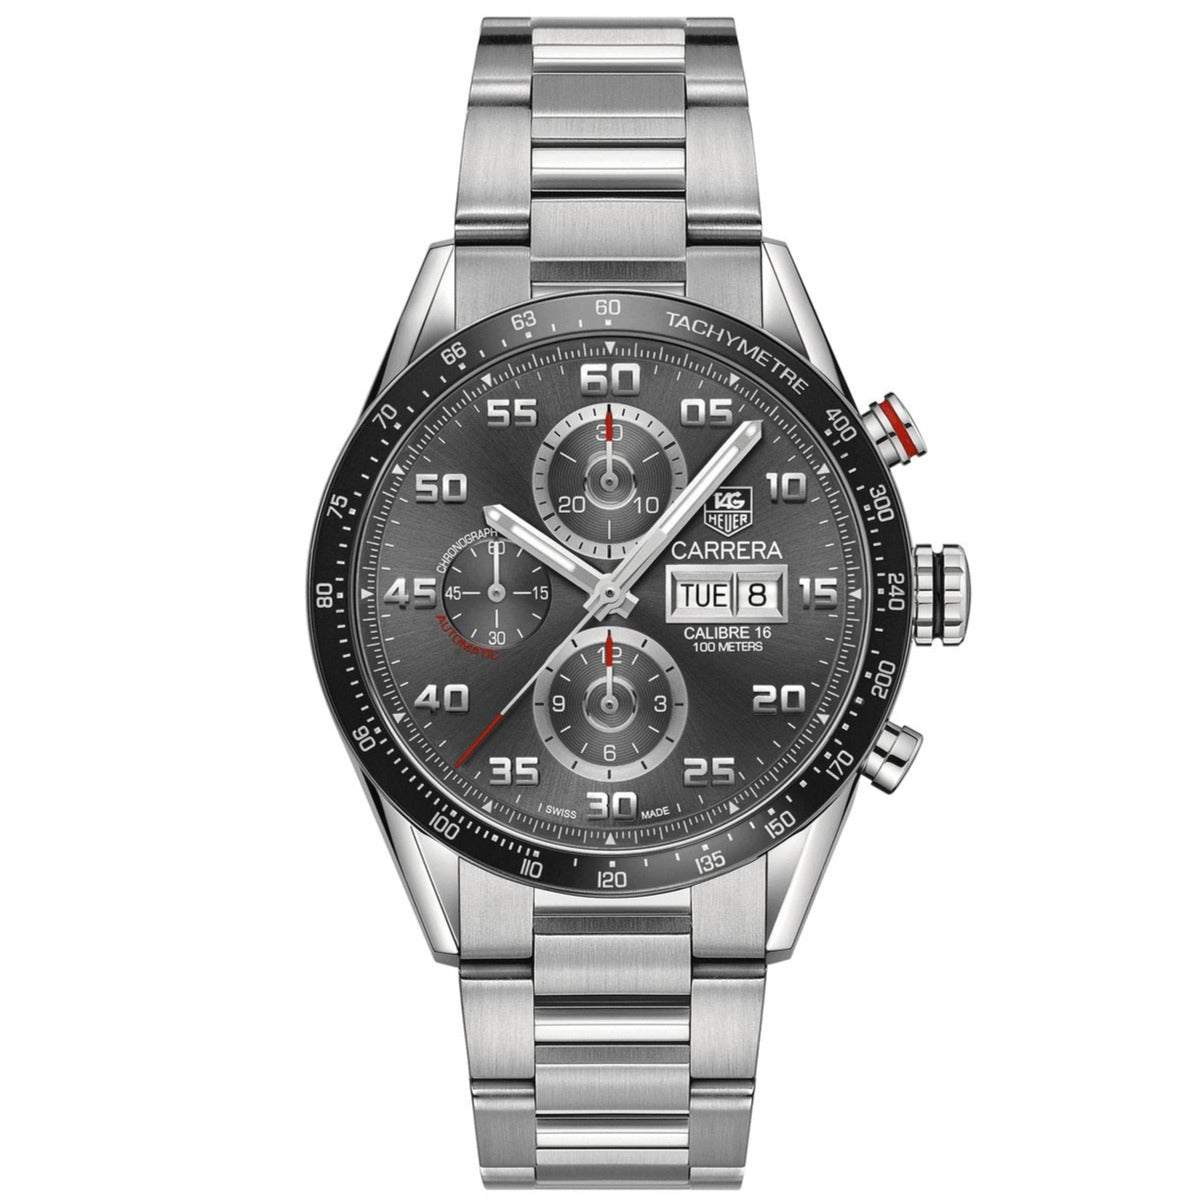 TAG Heuer Men's Carrera Automatic Calibre 16 Anthracite Dial Watch